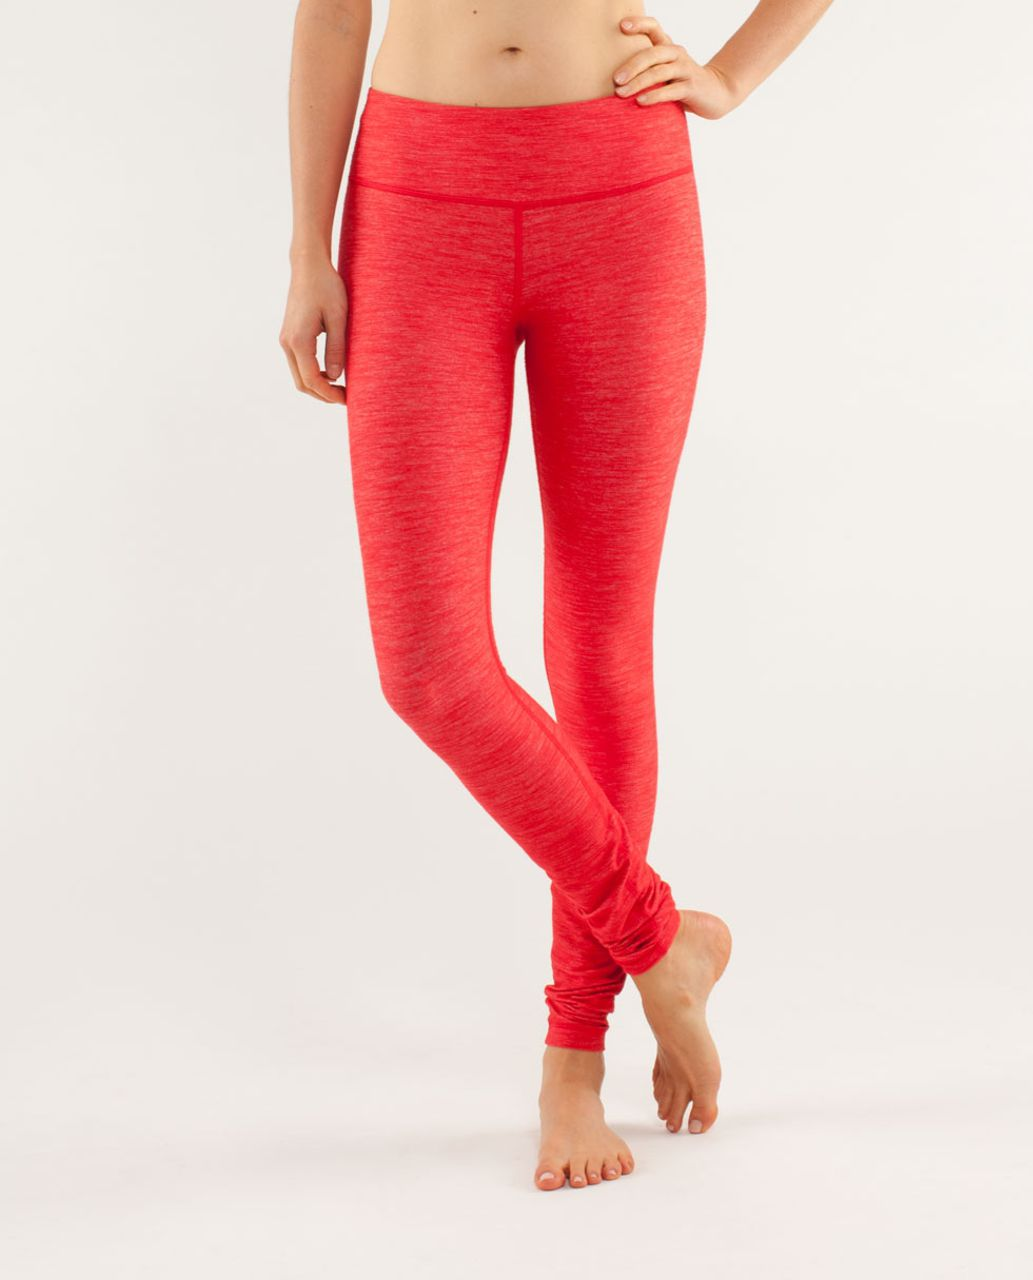 Lululemon Wunder Under Pant - Reversible Slub Denim Love Red